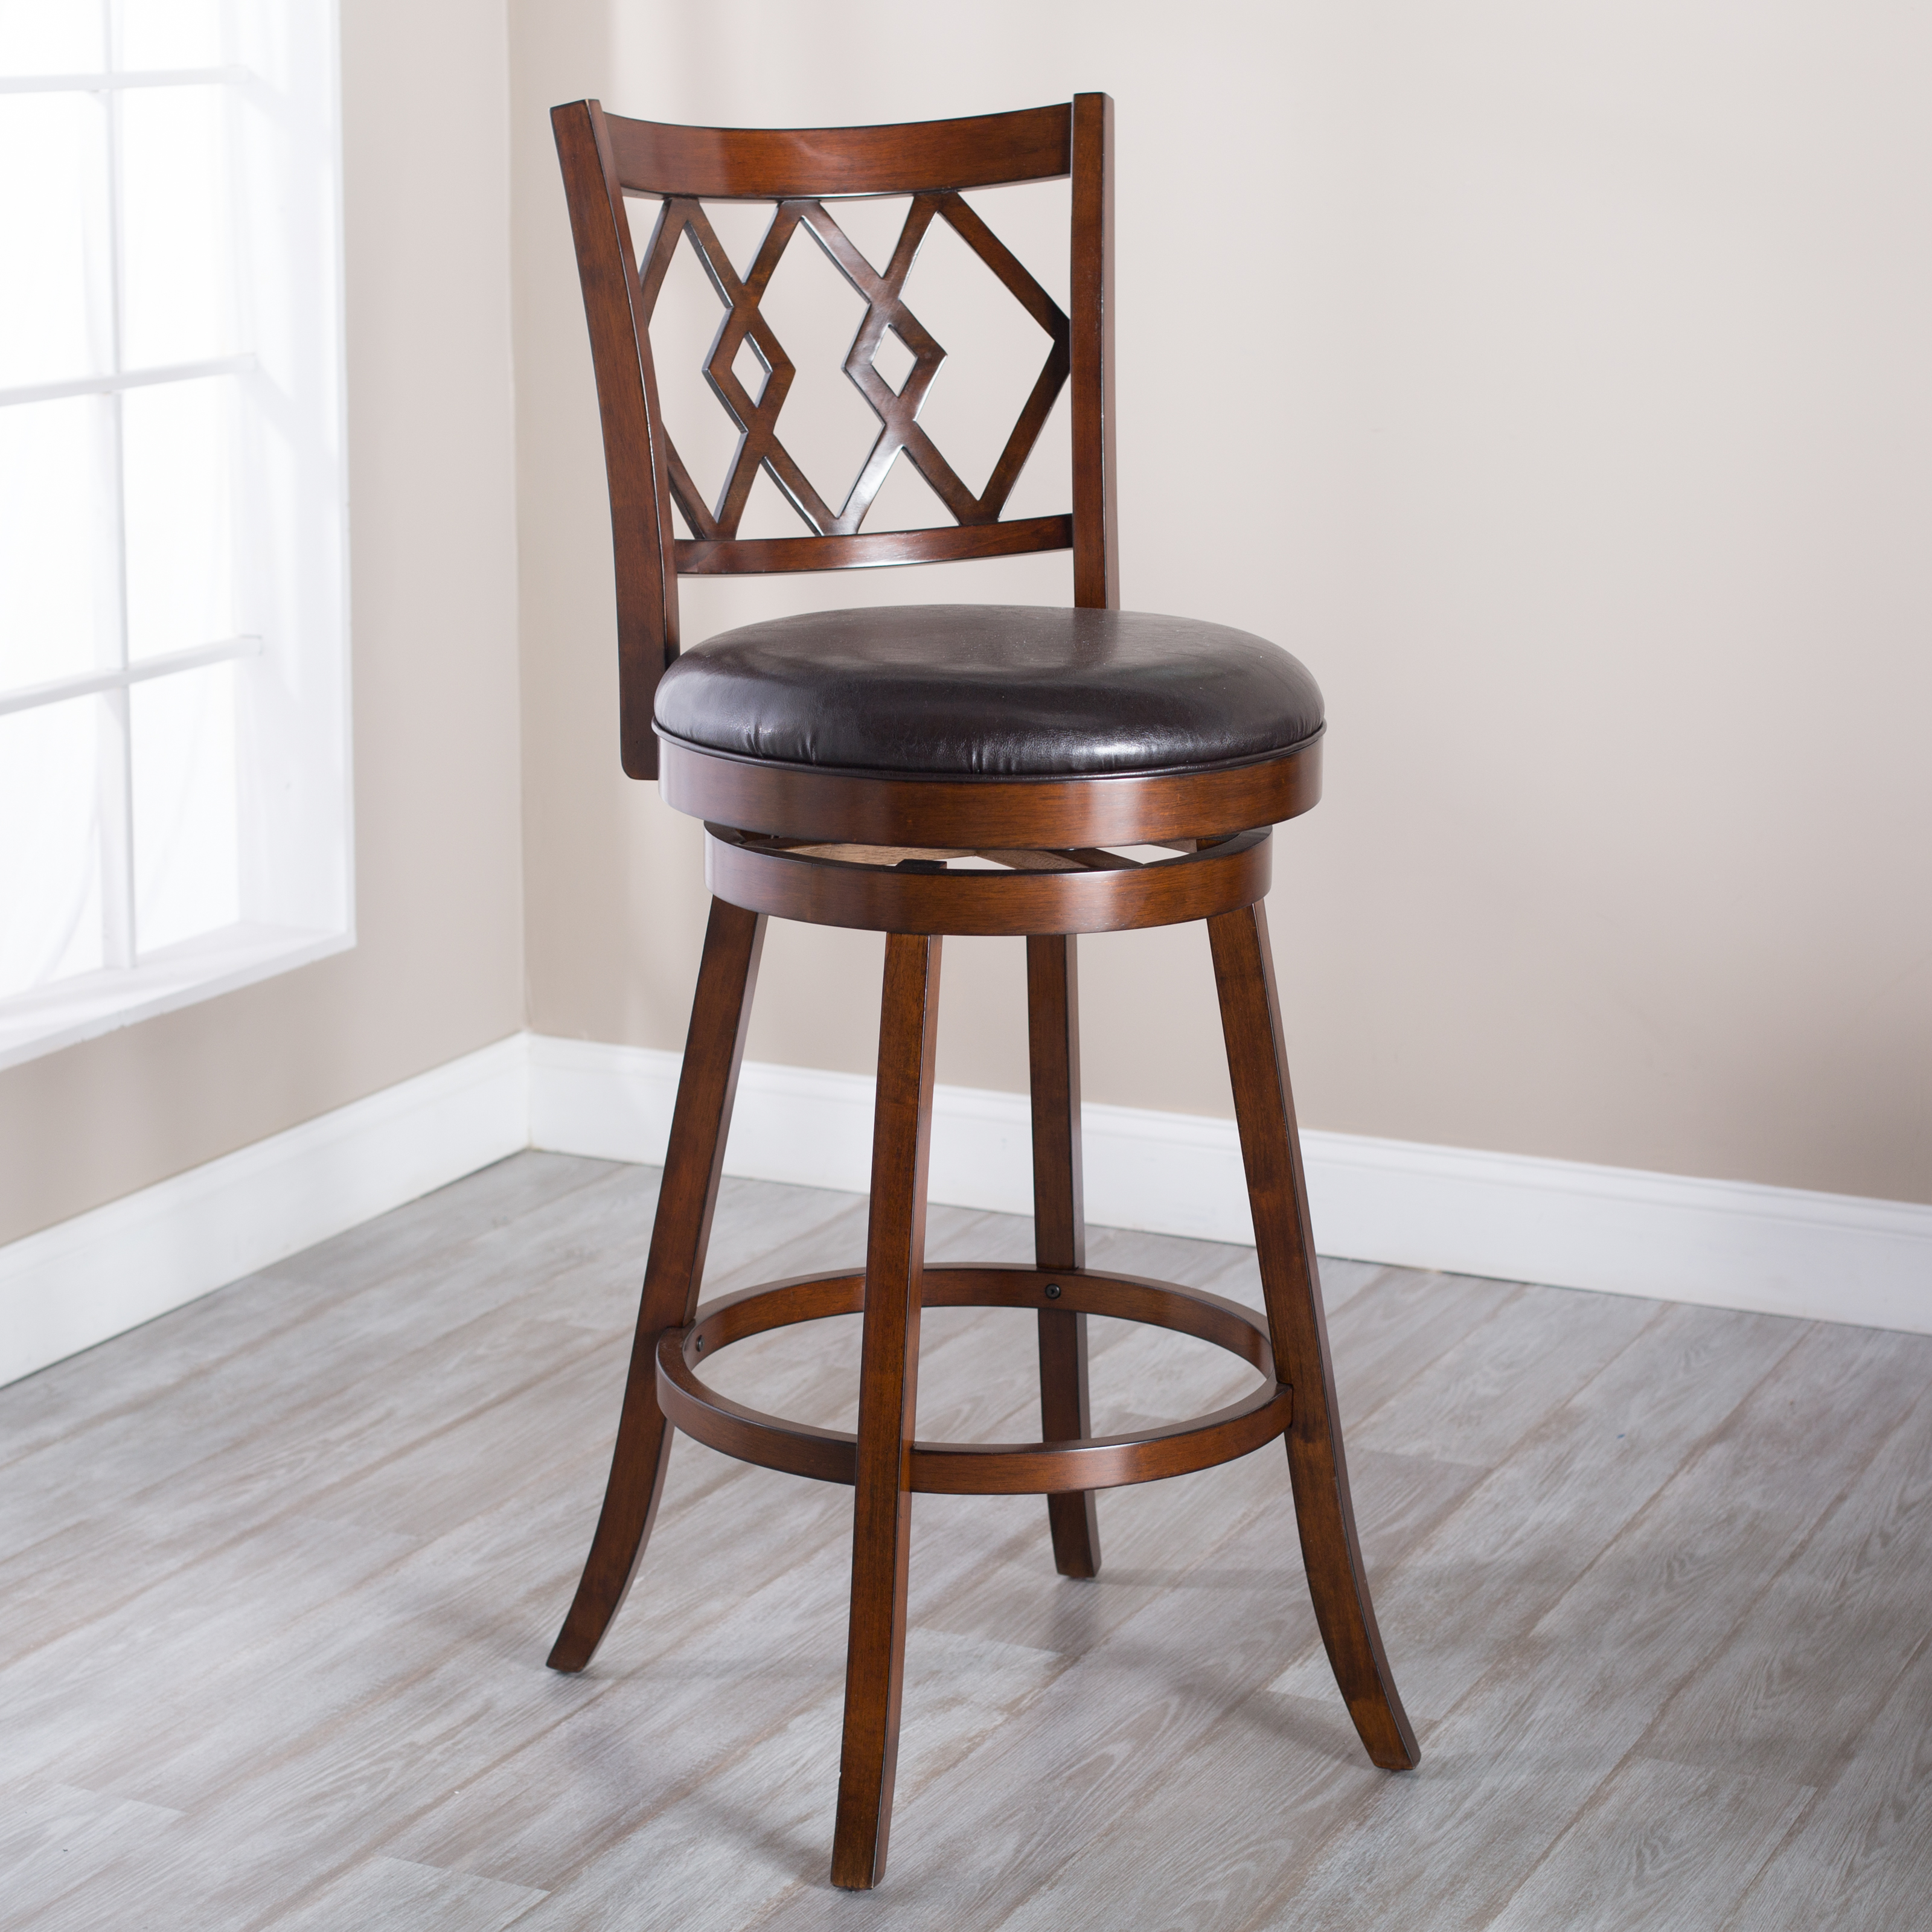 Belham living reno extra tall swivel bar stool